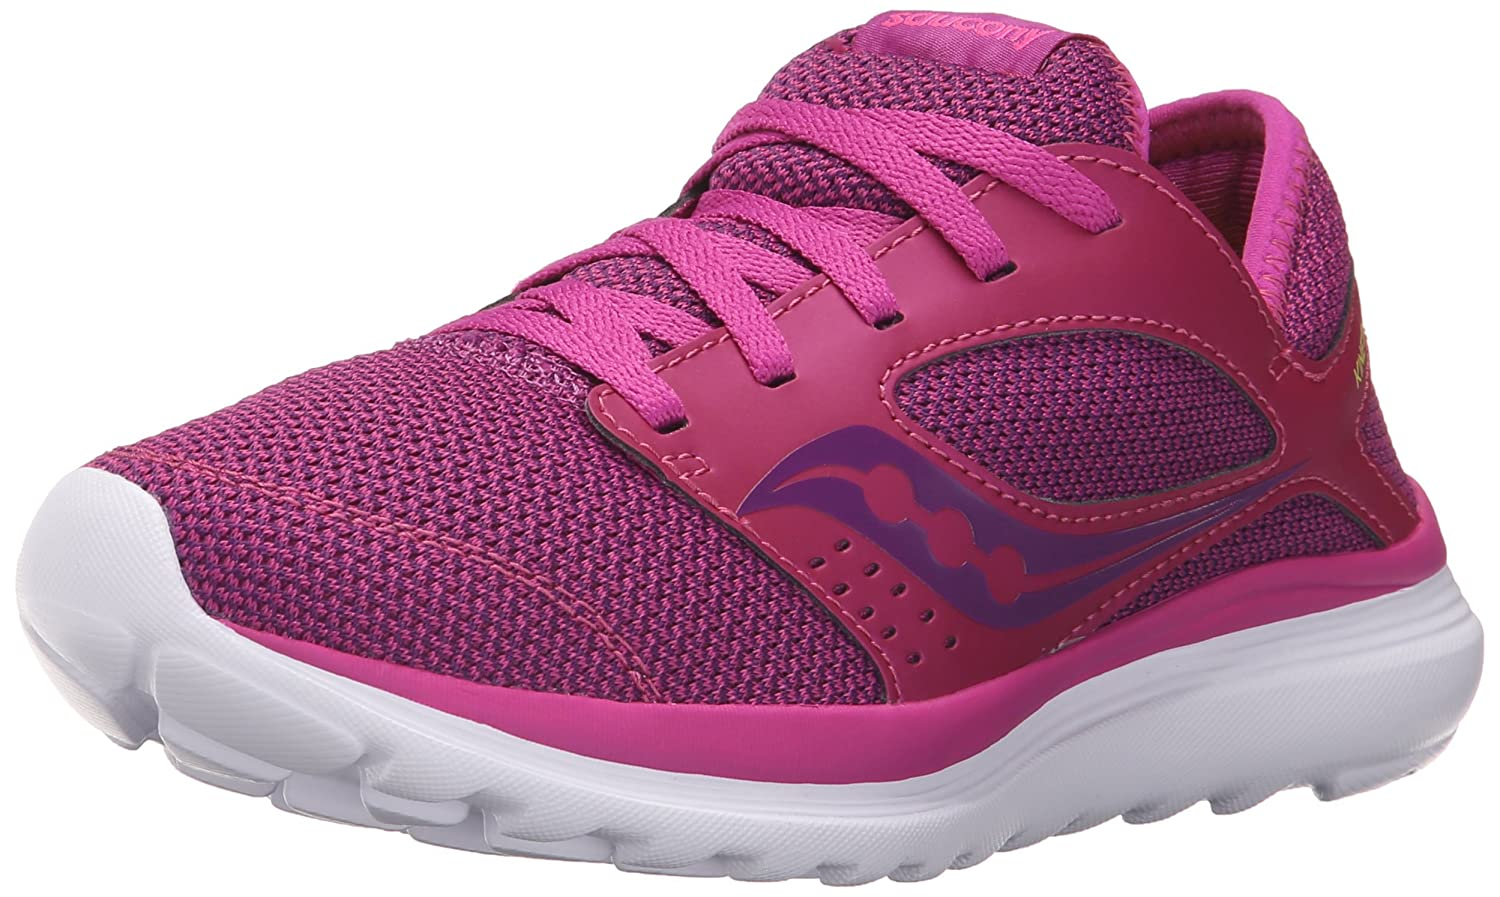 Saucony Women's Kineta Relay Running Shoe B018FC5HO8 5 B(M) US|Fuschia/Beer